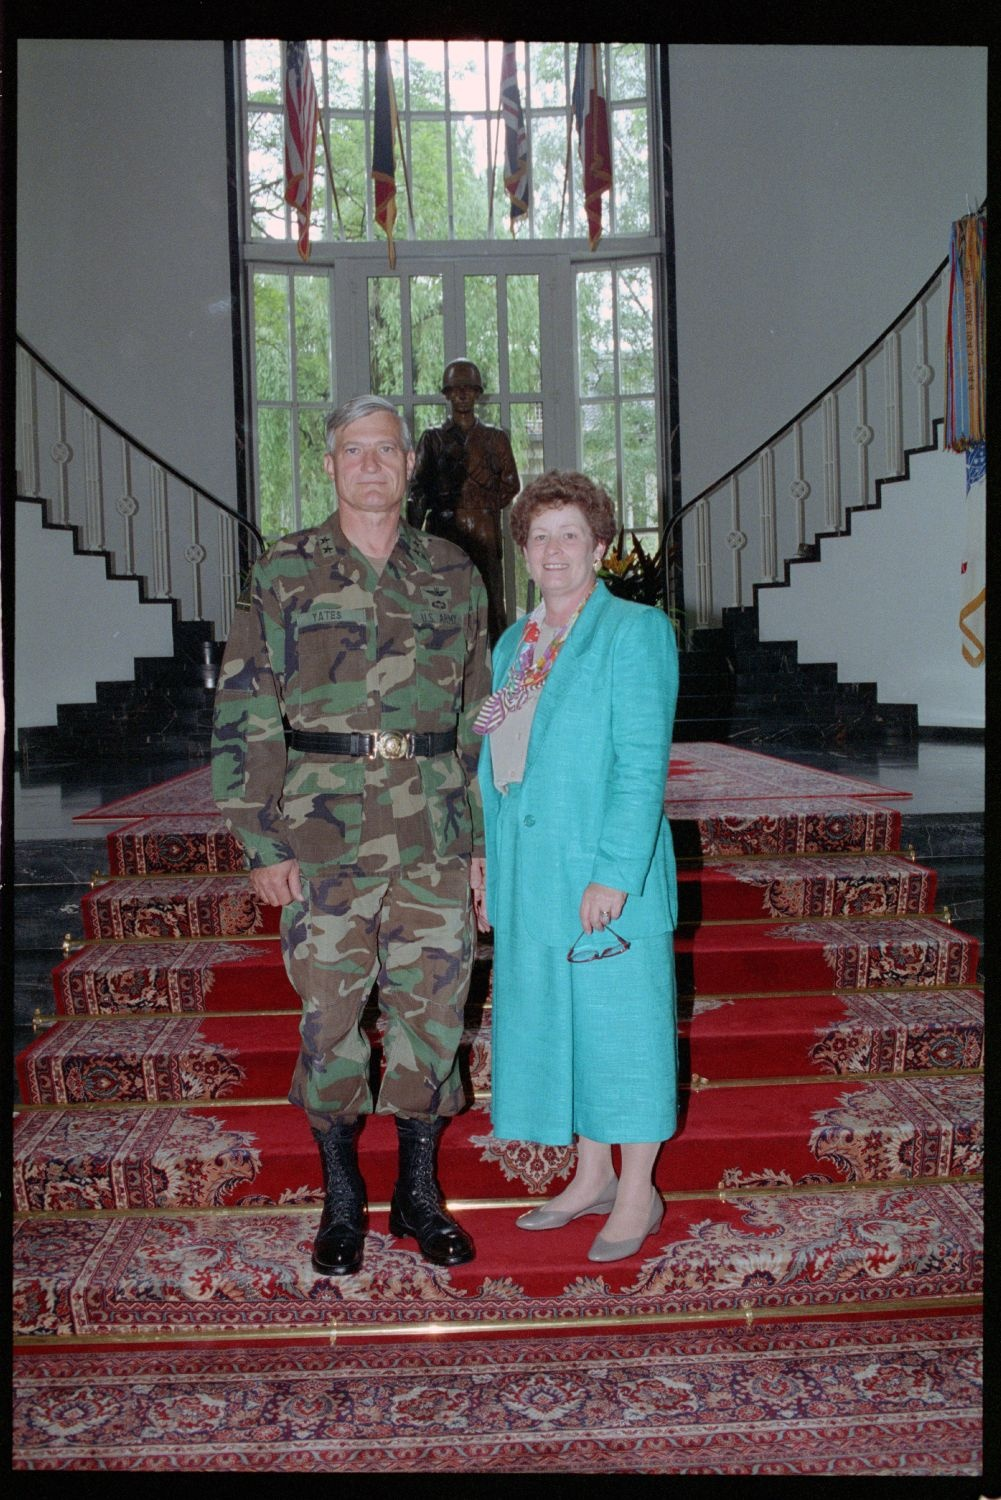 Fotografie: Major General Walter Yates und Ehefrau in den Lucius D. Clay Headquarters in Berlin-Dahlem (AlliiertenMuseum/U.S. Army Photograph Public Domain Mark)